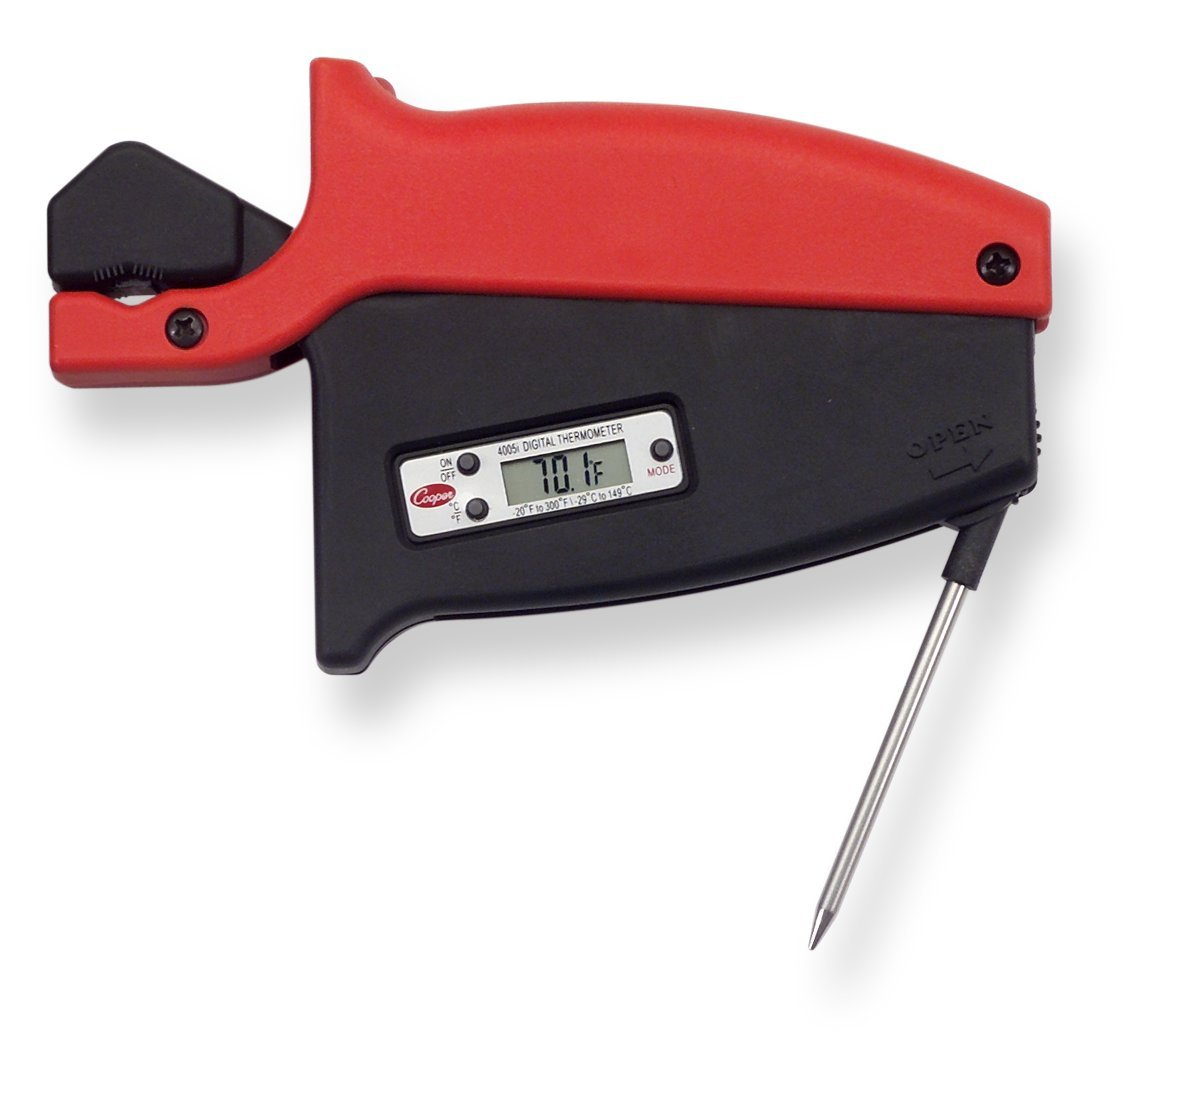 Cooper-Atkins 4005I Cordless Pipe Clamp Thermistor Surface Instrument, -20° to 300°F Temperature Range